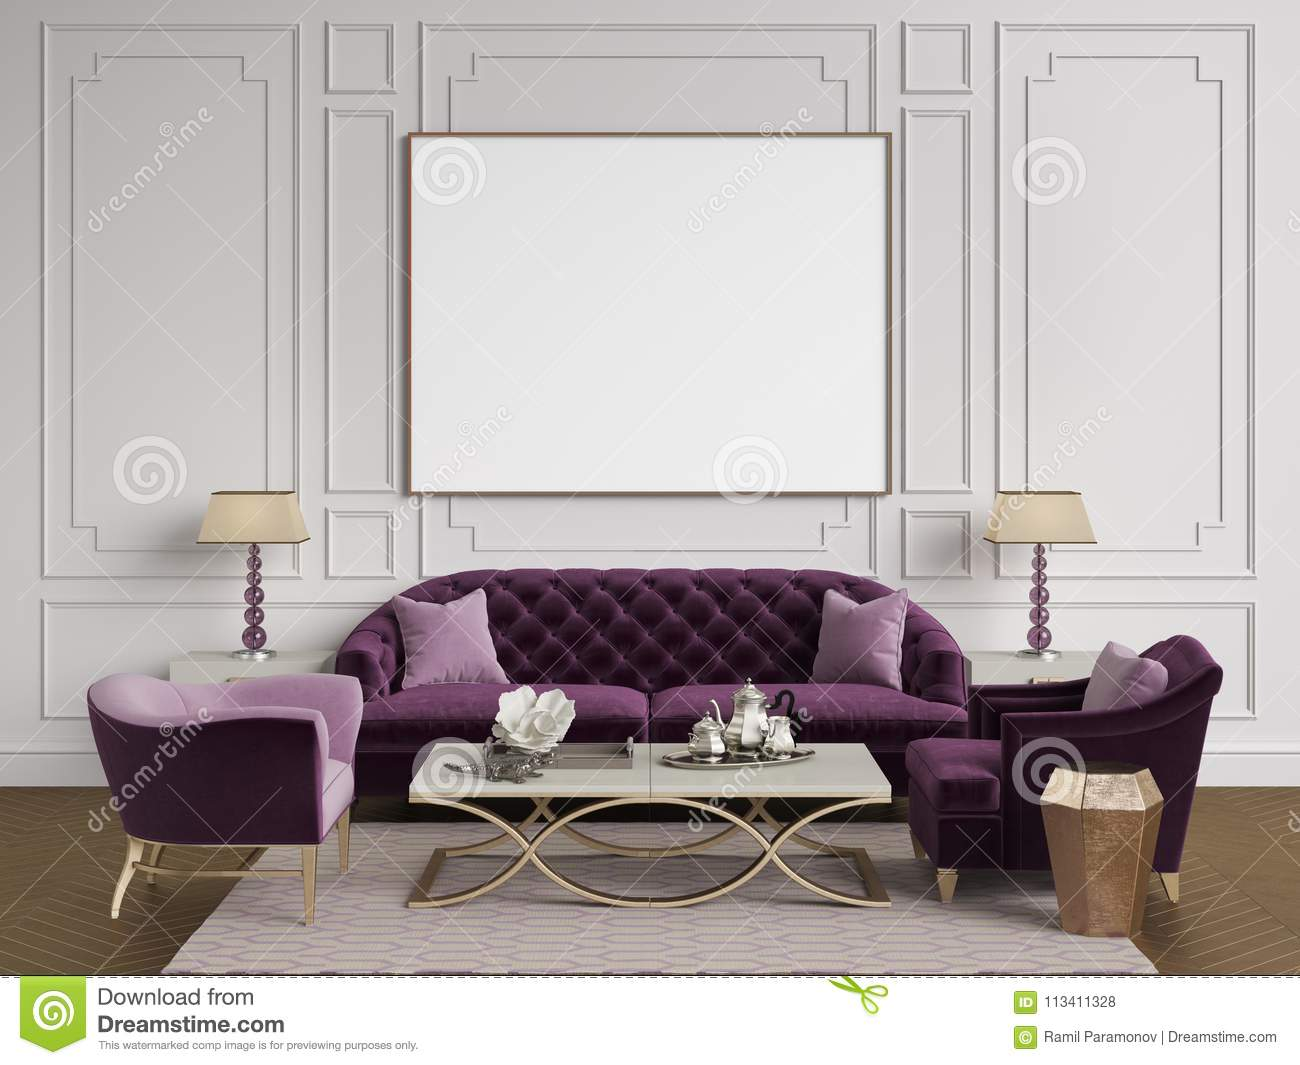 Classic Interior In Purple Pink And Goldcolors Sofa Chairs